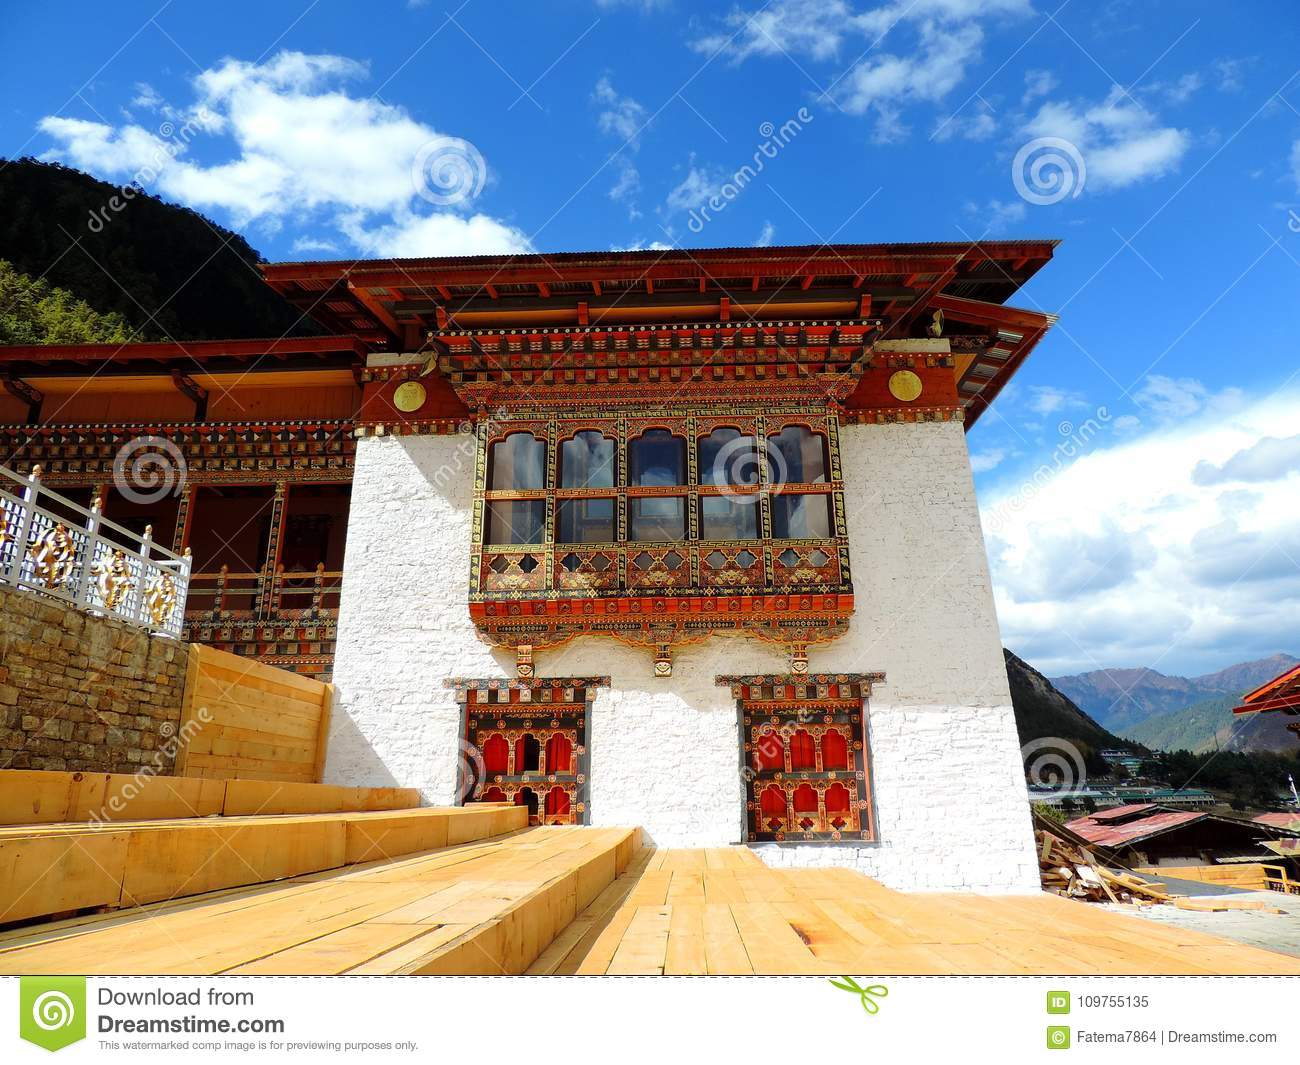 Lhakhang Karpo White Temple In Haa Valley Located In Paro Bhutan